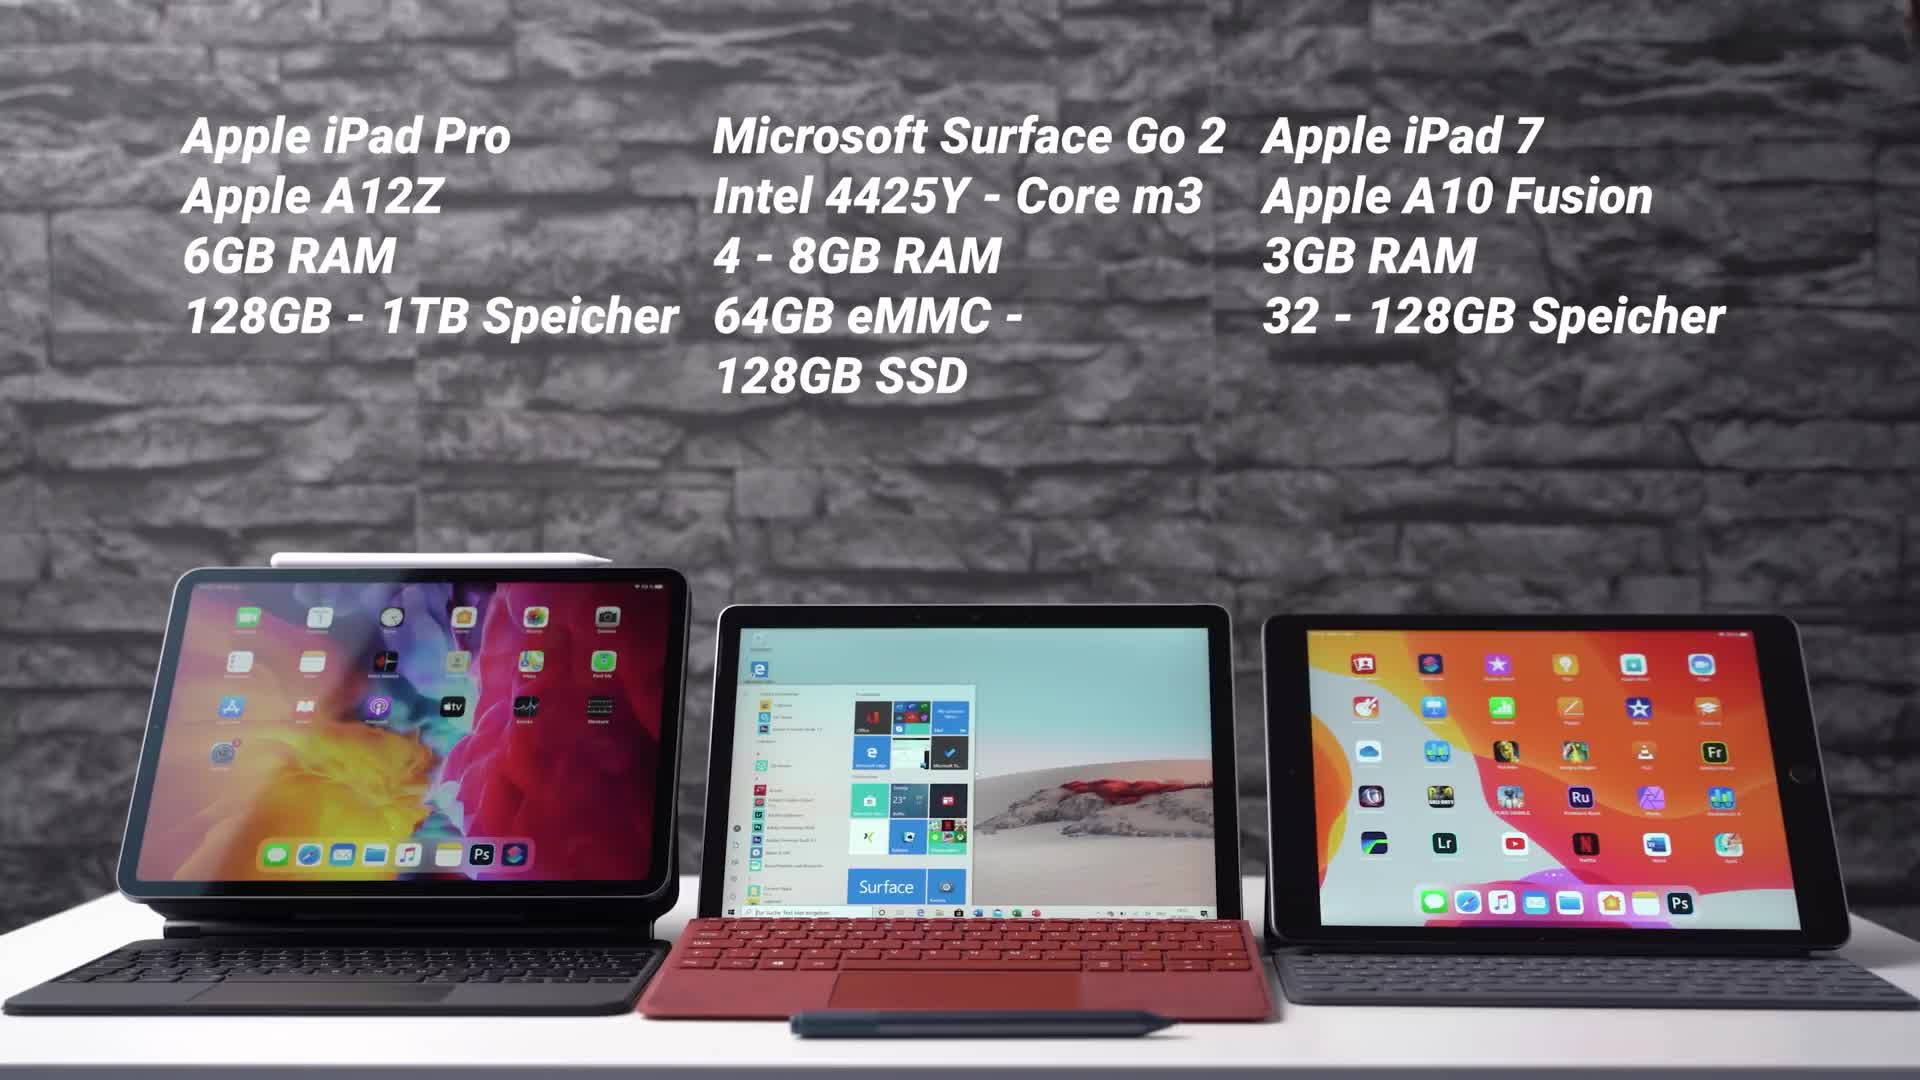 Microsoft, Apple, Windows 10, Tablet, Ipad, Surface, Microsoft Surface, Apple Ipad, Andrzej Tokarski, Tabletblog, ipad pro, Vergleich, iPadOS, Surface Go, Apple iPad Pro, Microsoft Surface Go, Microsoft Surface Go 2, Surface Go 2, iPad OS, iPad 7, Apple iPad 7